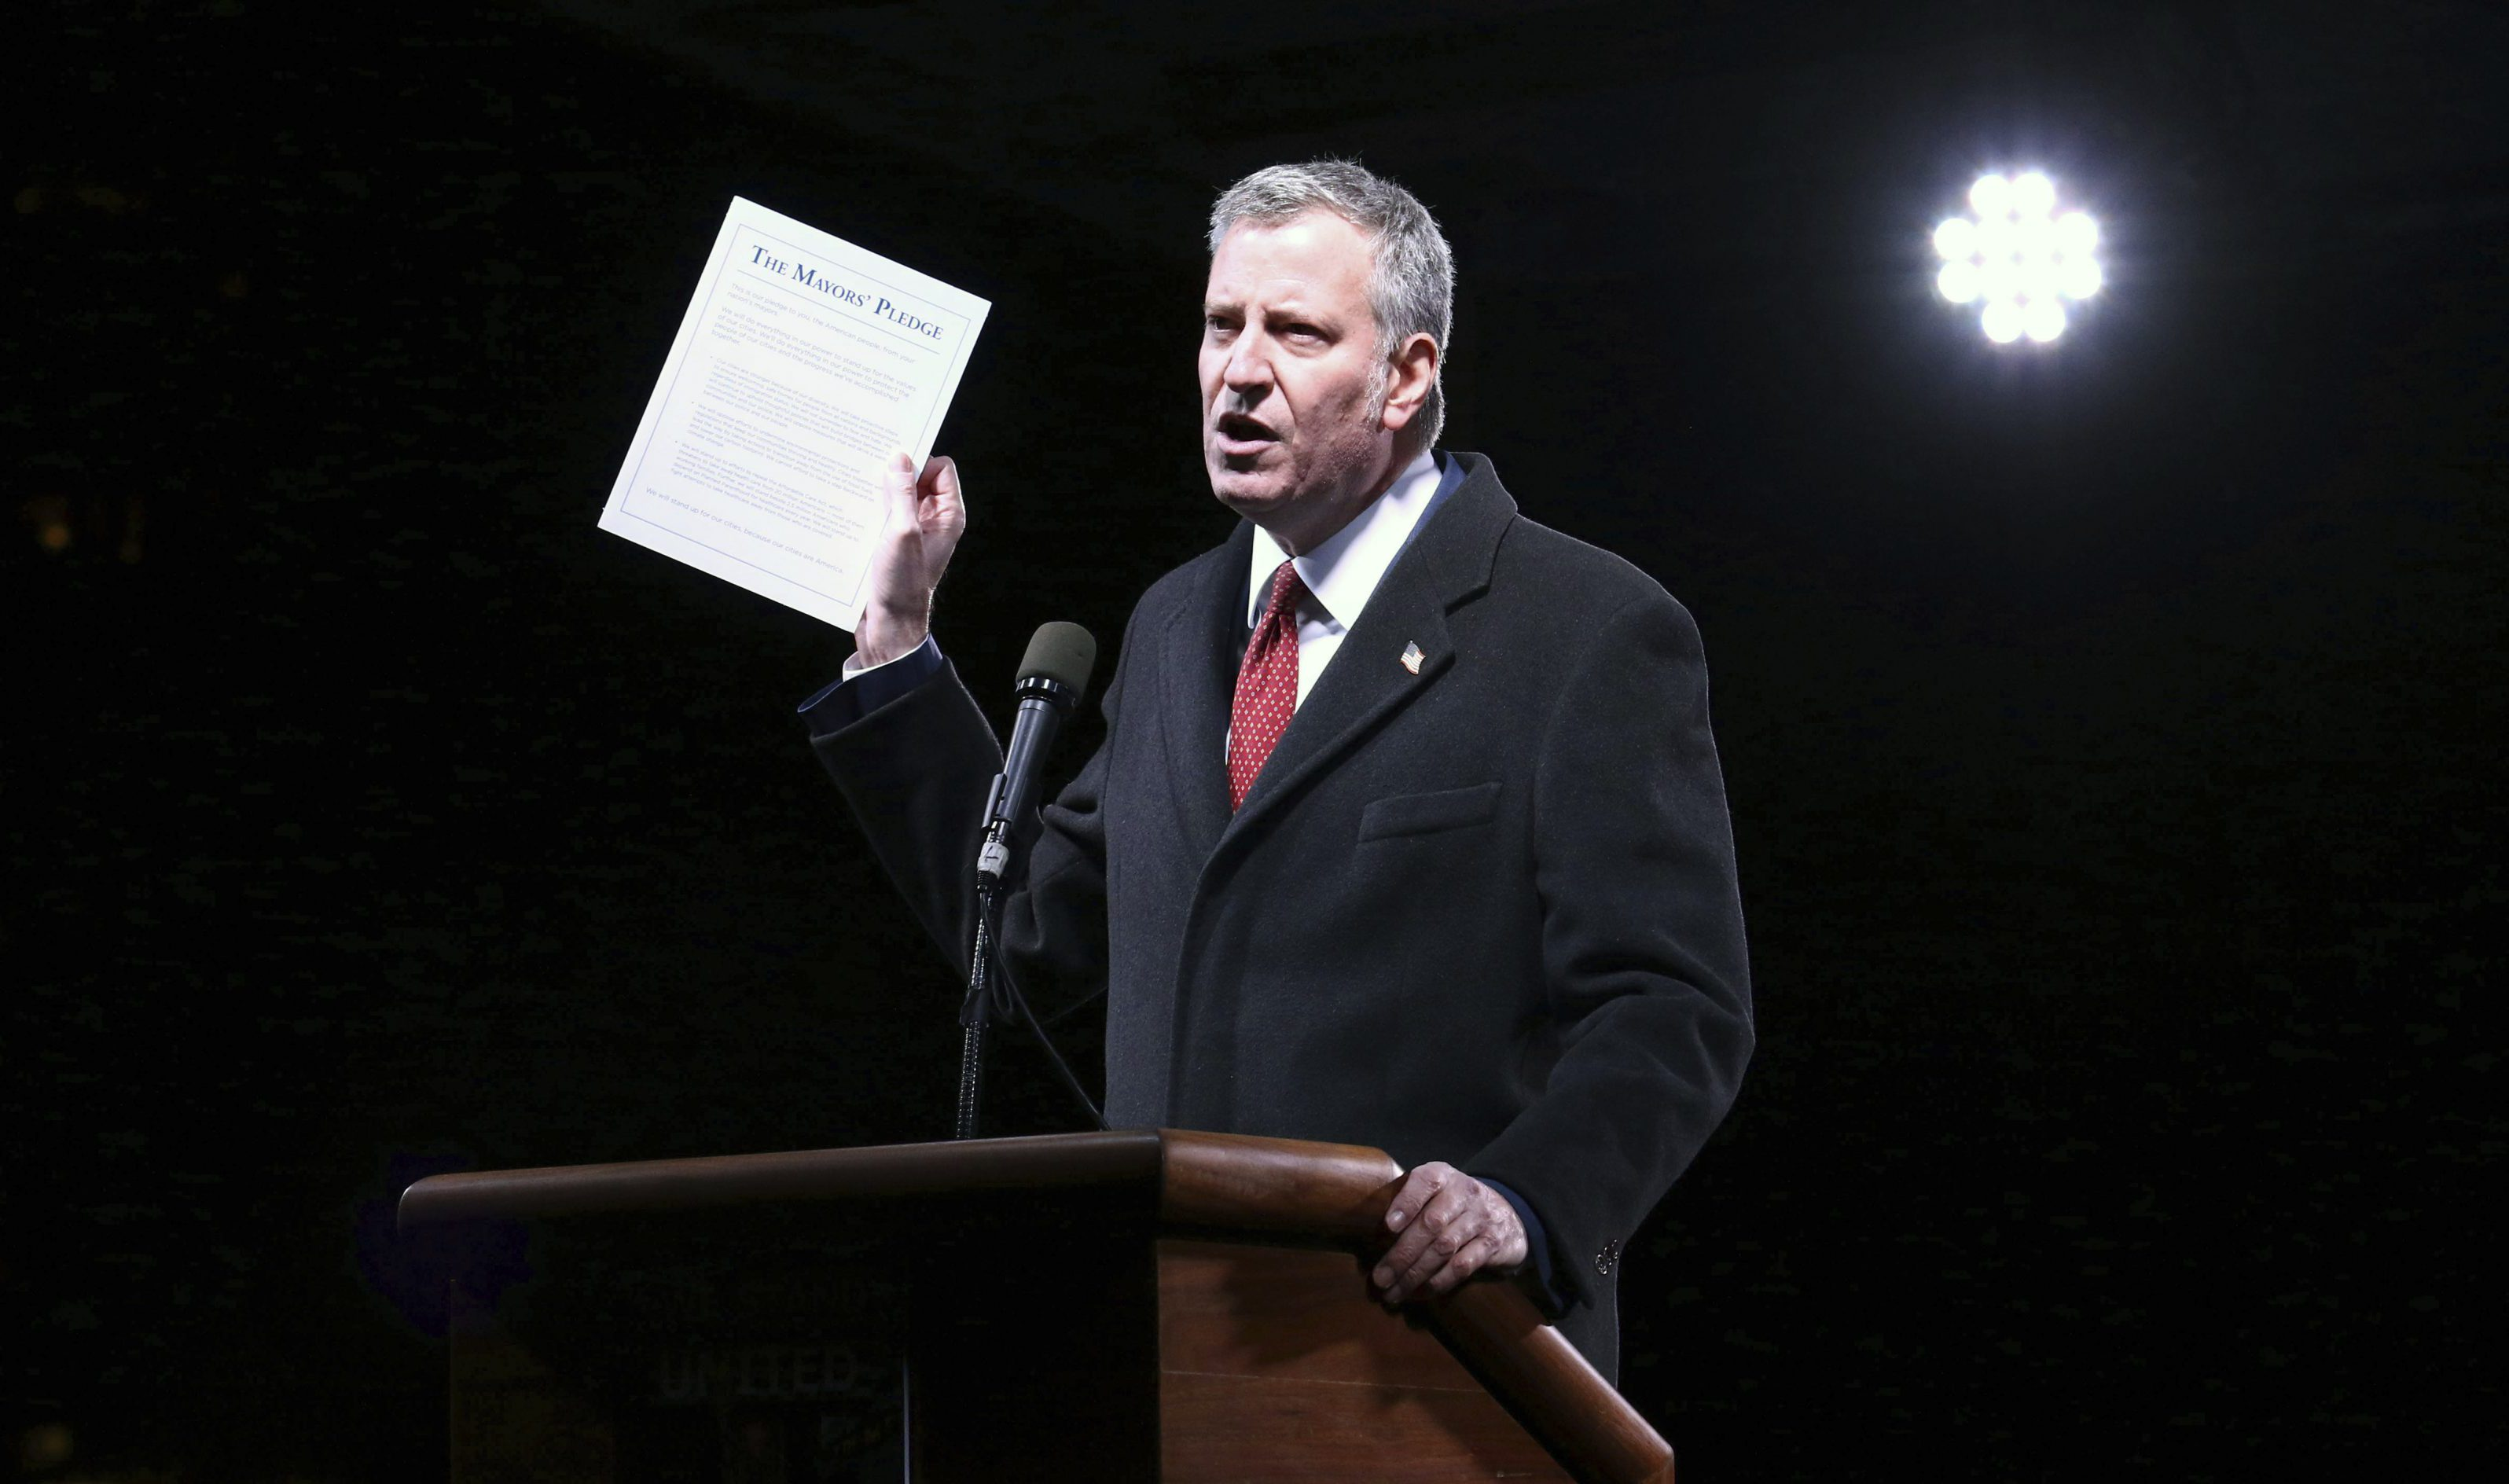 """FILE - In this Jan. 19, 2017 file photo, New York Mayor Bill de Blasio holds up a documented titled """"The Mayors' Pledge"""" during the """"We Stand United: New York Rally to Protect Shared Values"""" event in New York. Blasio said Wednesday, Jan. 25, 2017 that his city will continue to protect undocumented migrants, in a clear response to executive orders signed by President Donald Trump hours earlier which began the process of blocking federal aid to cities that protect foreigners living in the U.S. without permission. (Photo by Greg Allen/Invision/AP, File)"""